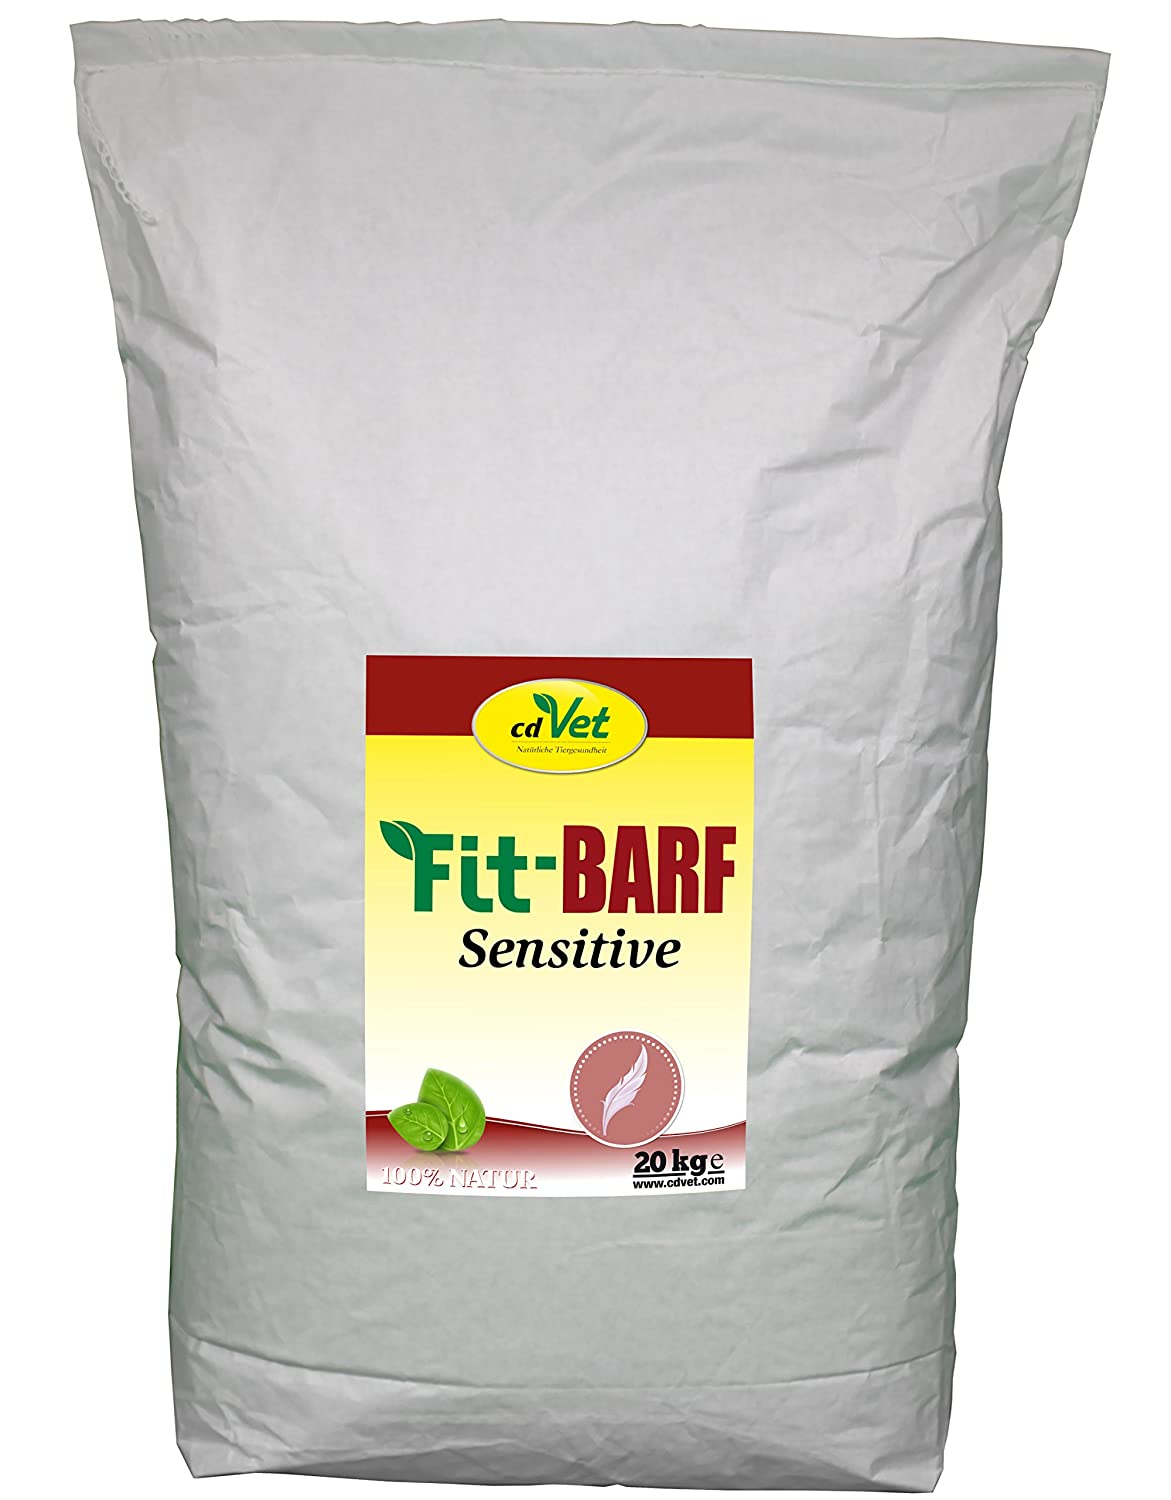 cdVet Naturprodukte Fit-BARF Sensitive 20 kg